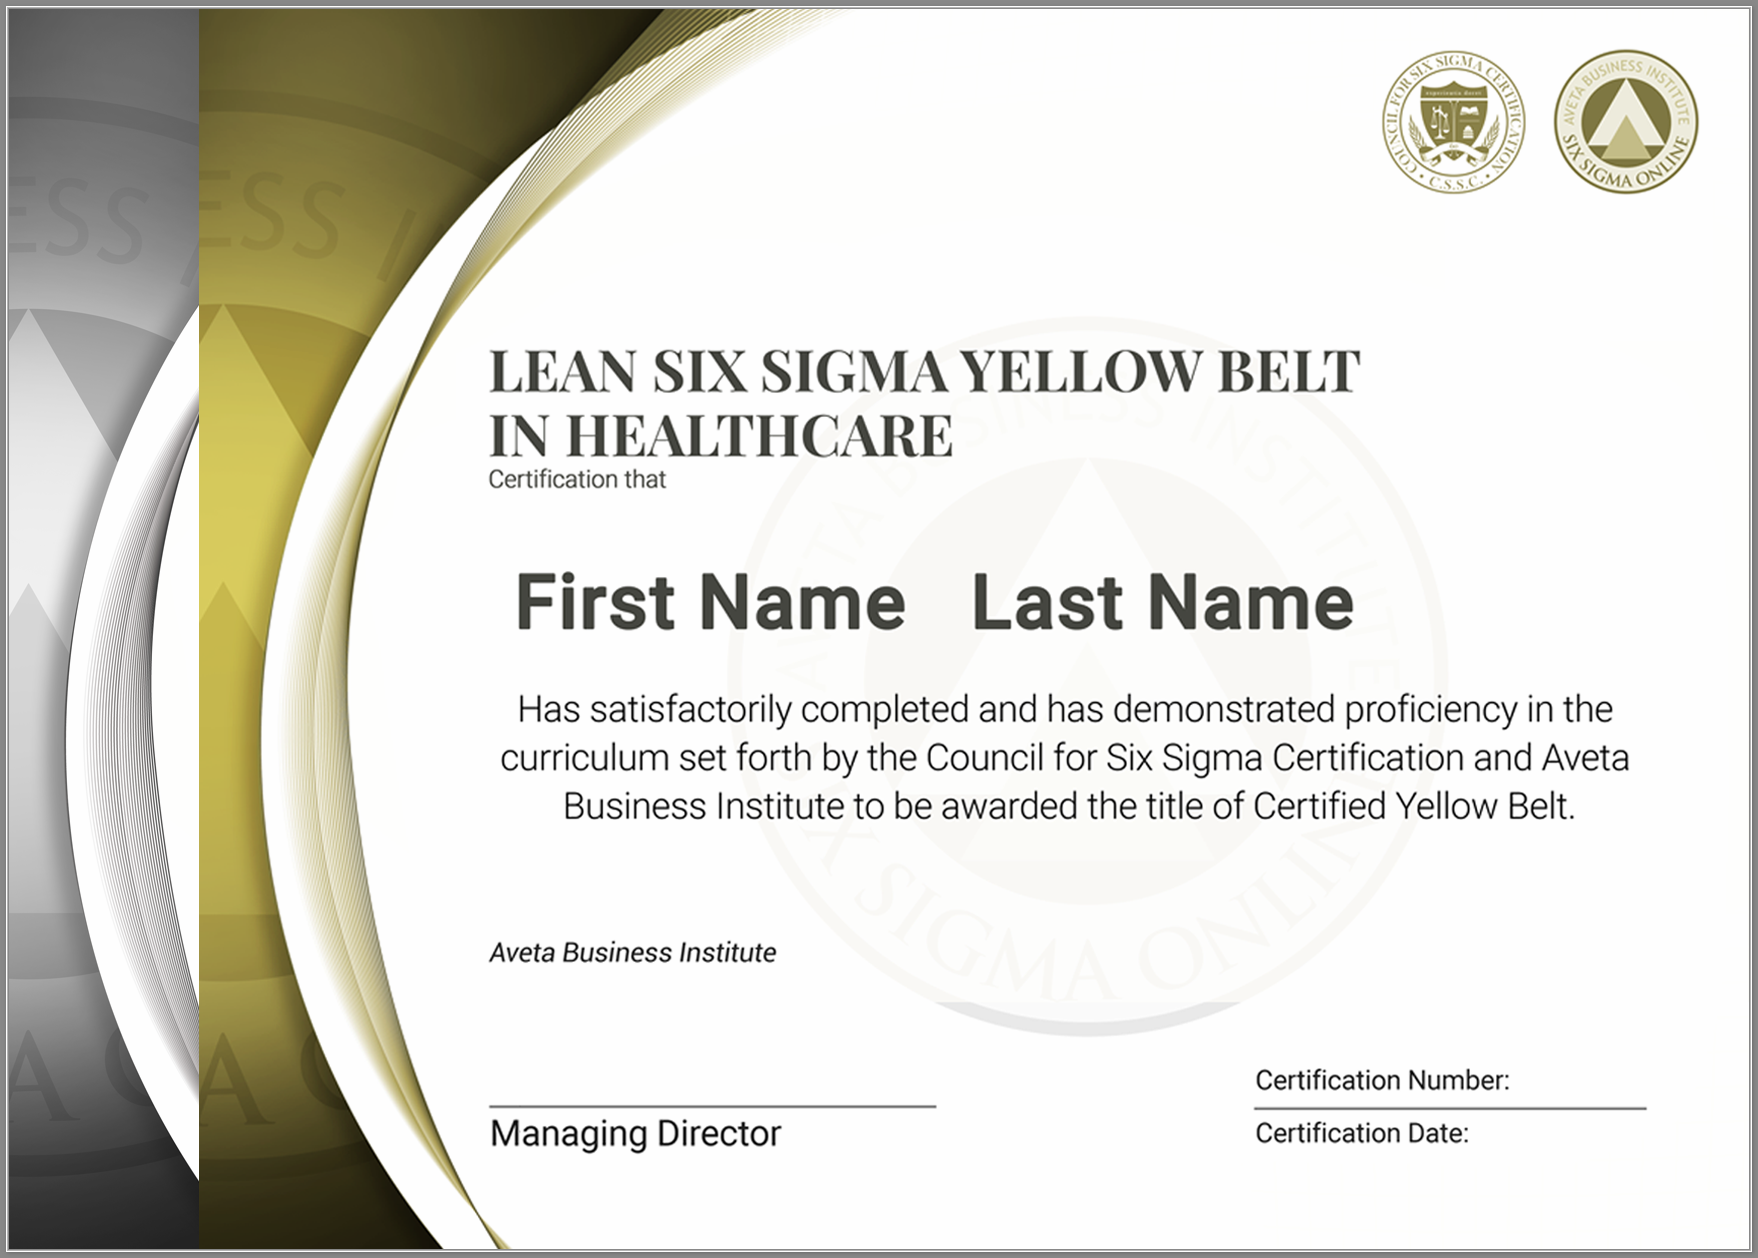 Lean Six Sigma Yellow Belt Certification in Healthcare